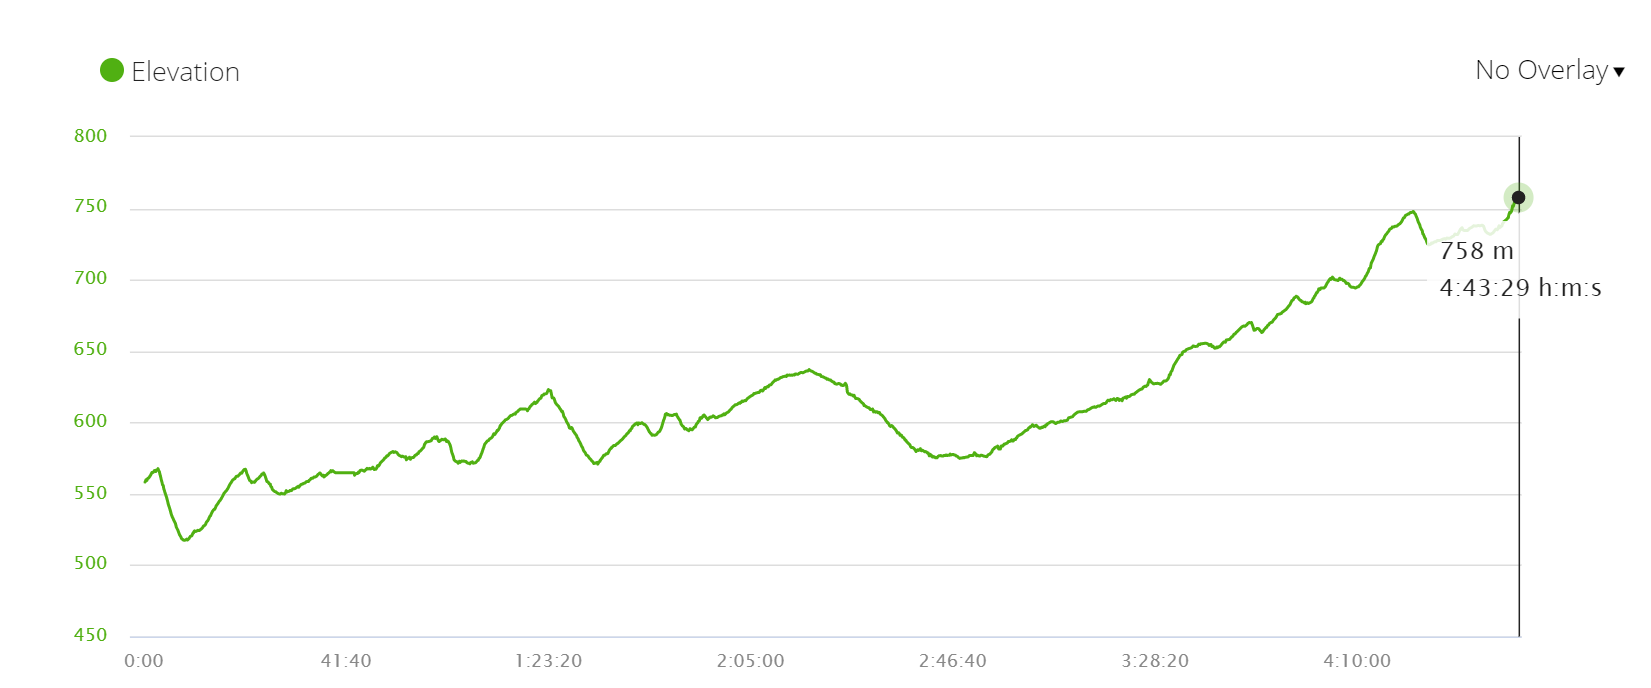 Camino Francés elevation profile stage 11